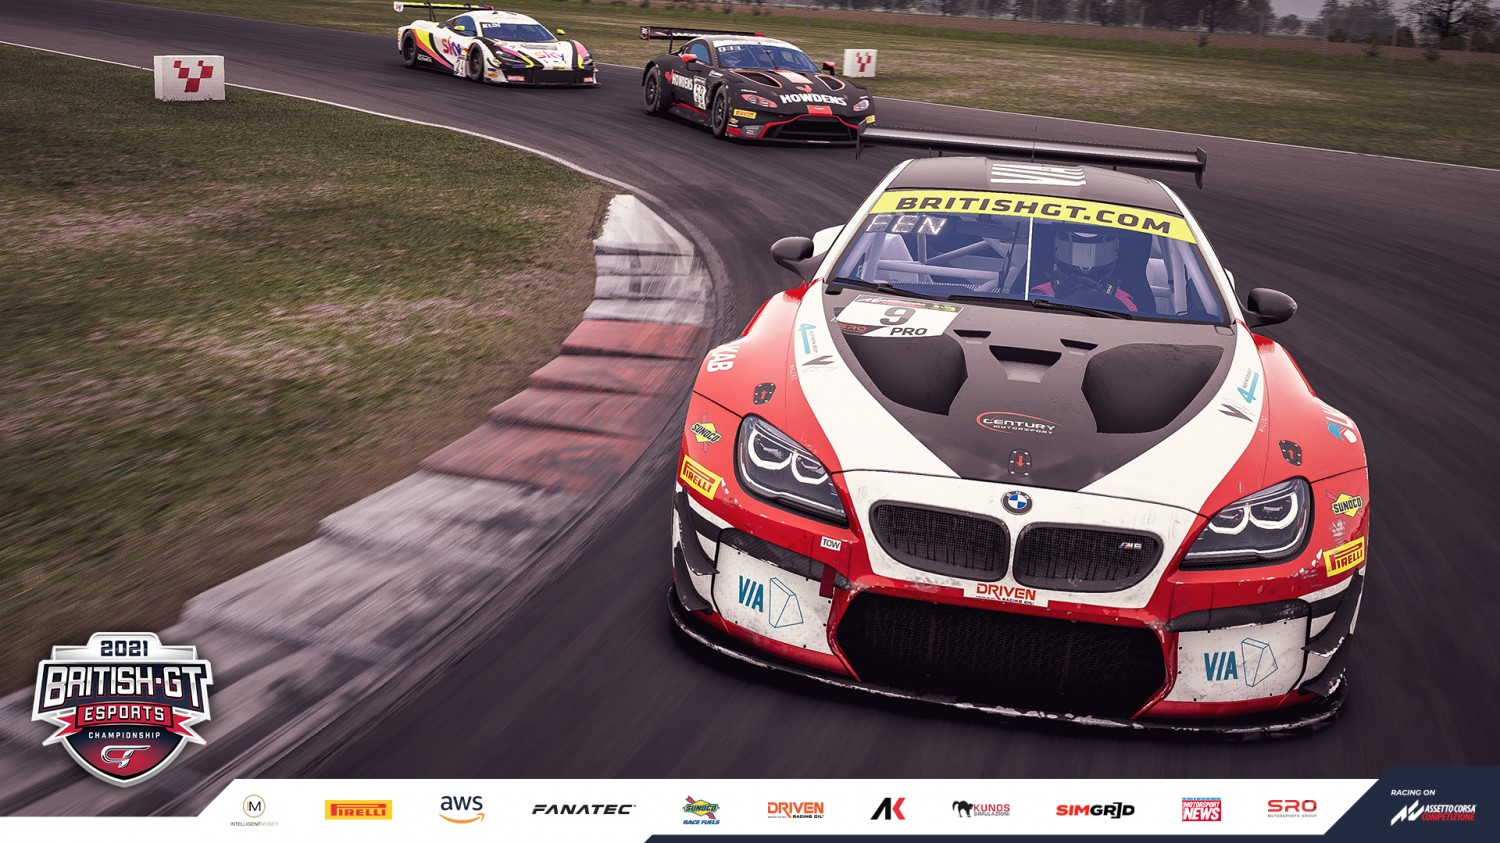 Esports Preview: 2021 campaign reaches halfway mark at Brands Hatch